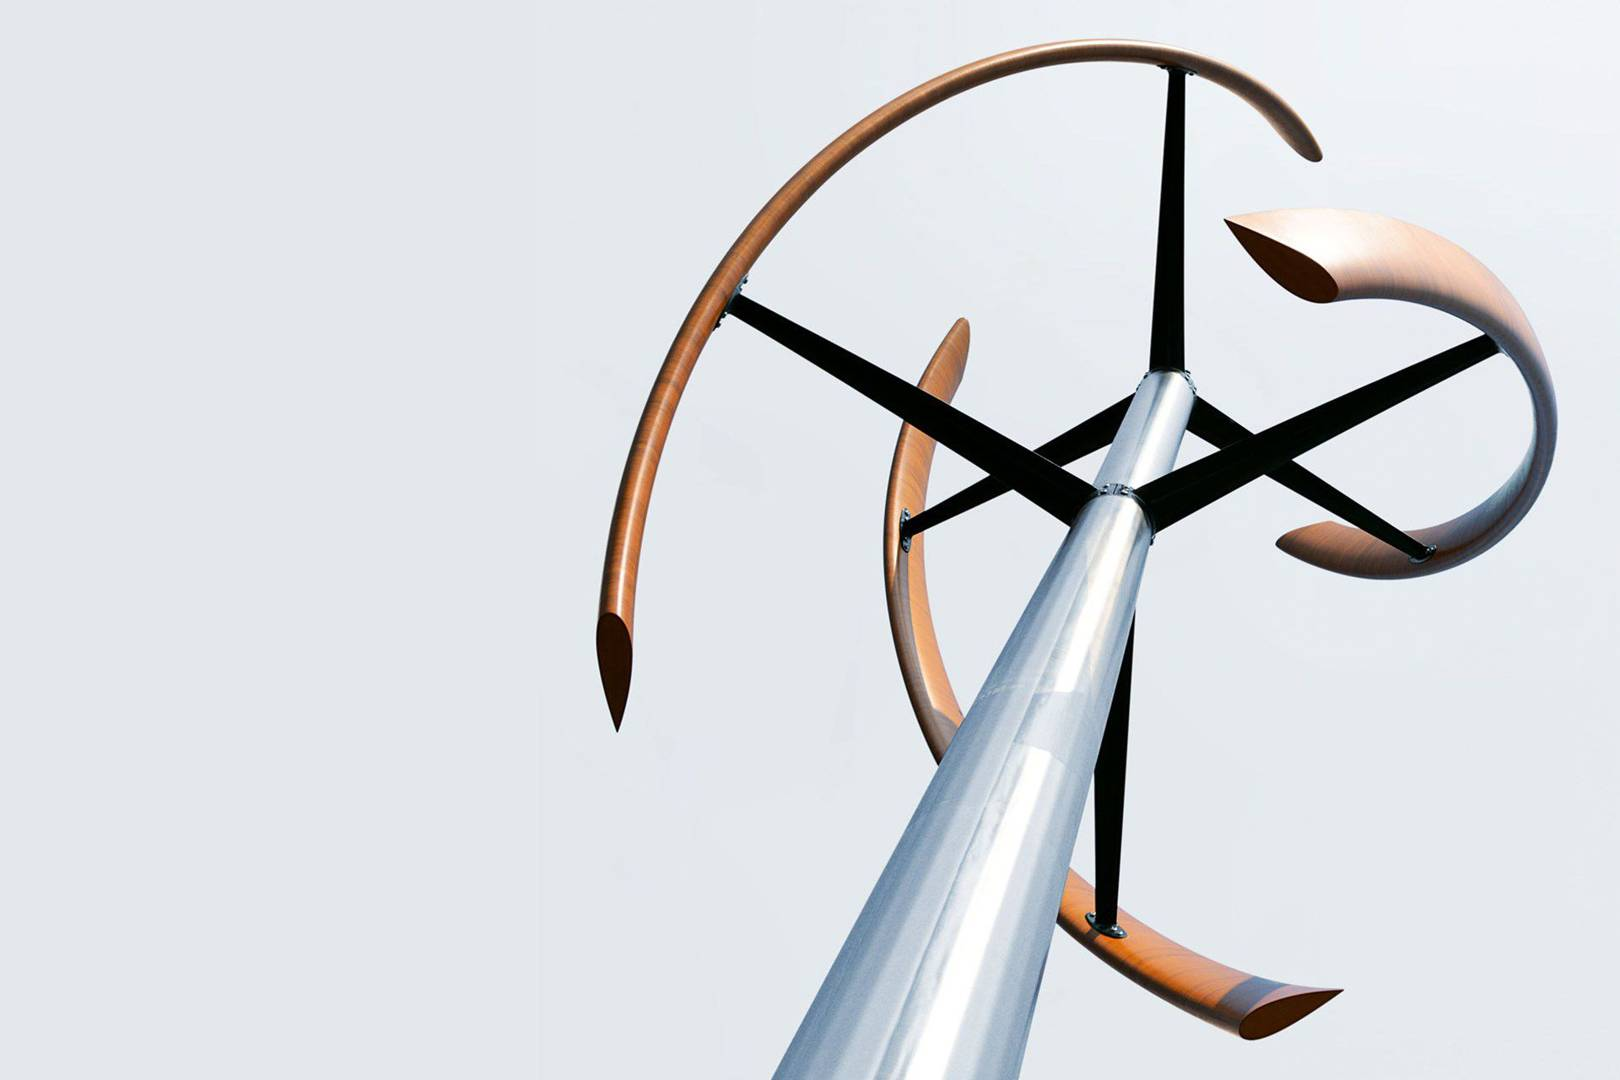 Enessere Wind Turbine Can Think For Itself Wired Uk